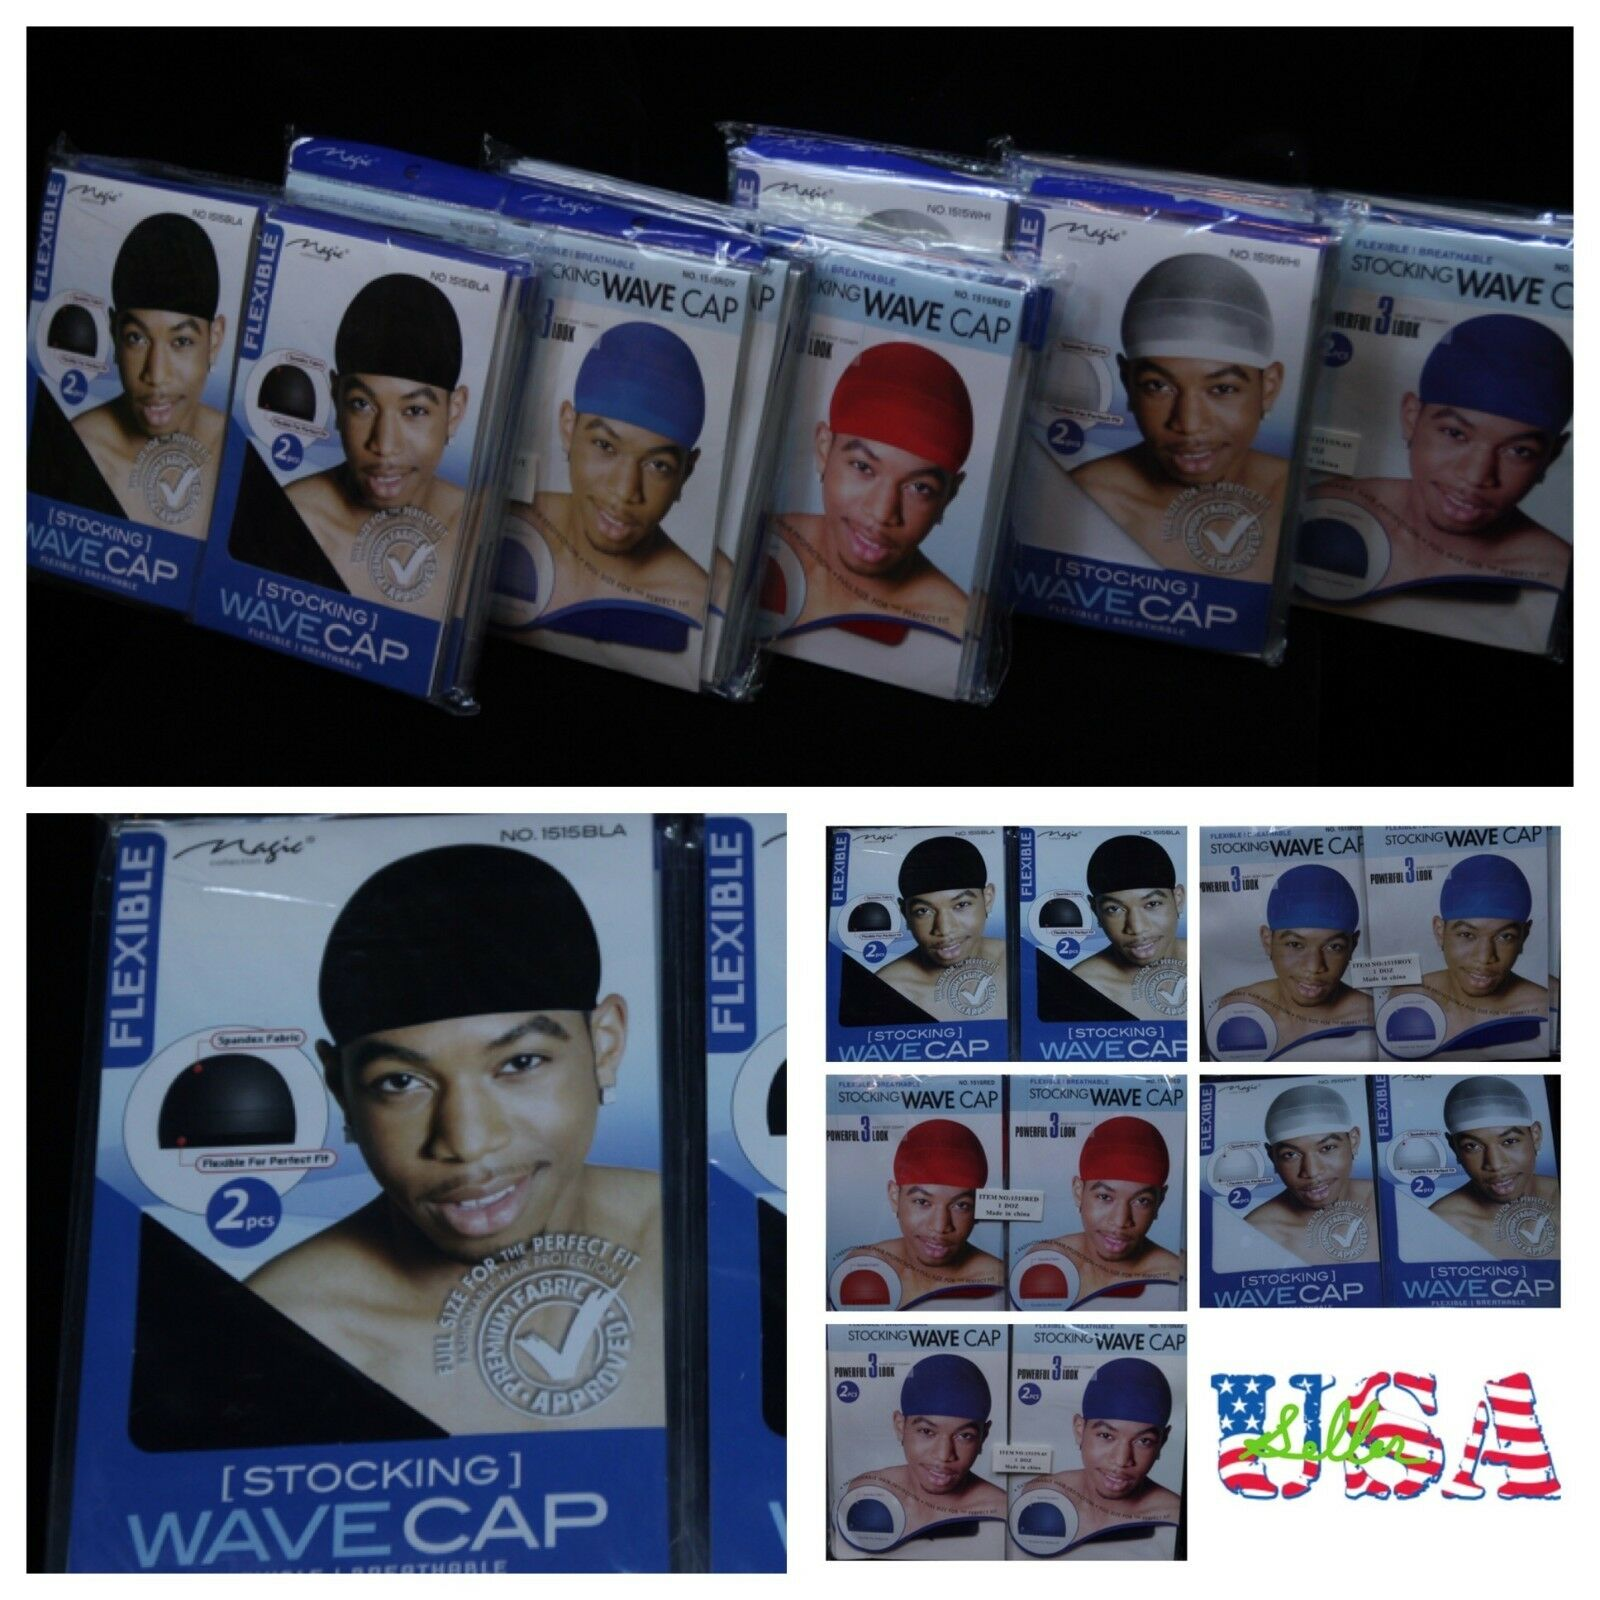 MENS 2PC Wave Stocking CapsSports Bike Motorcycle Headwrap dome cap